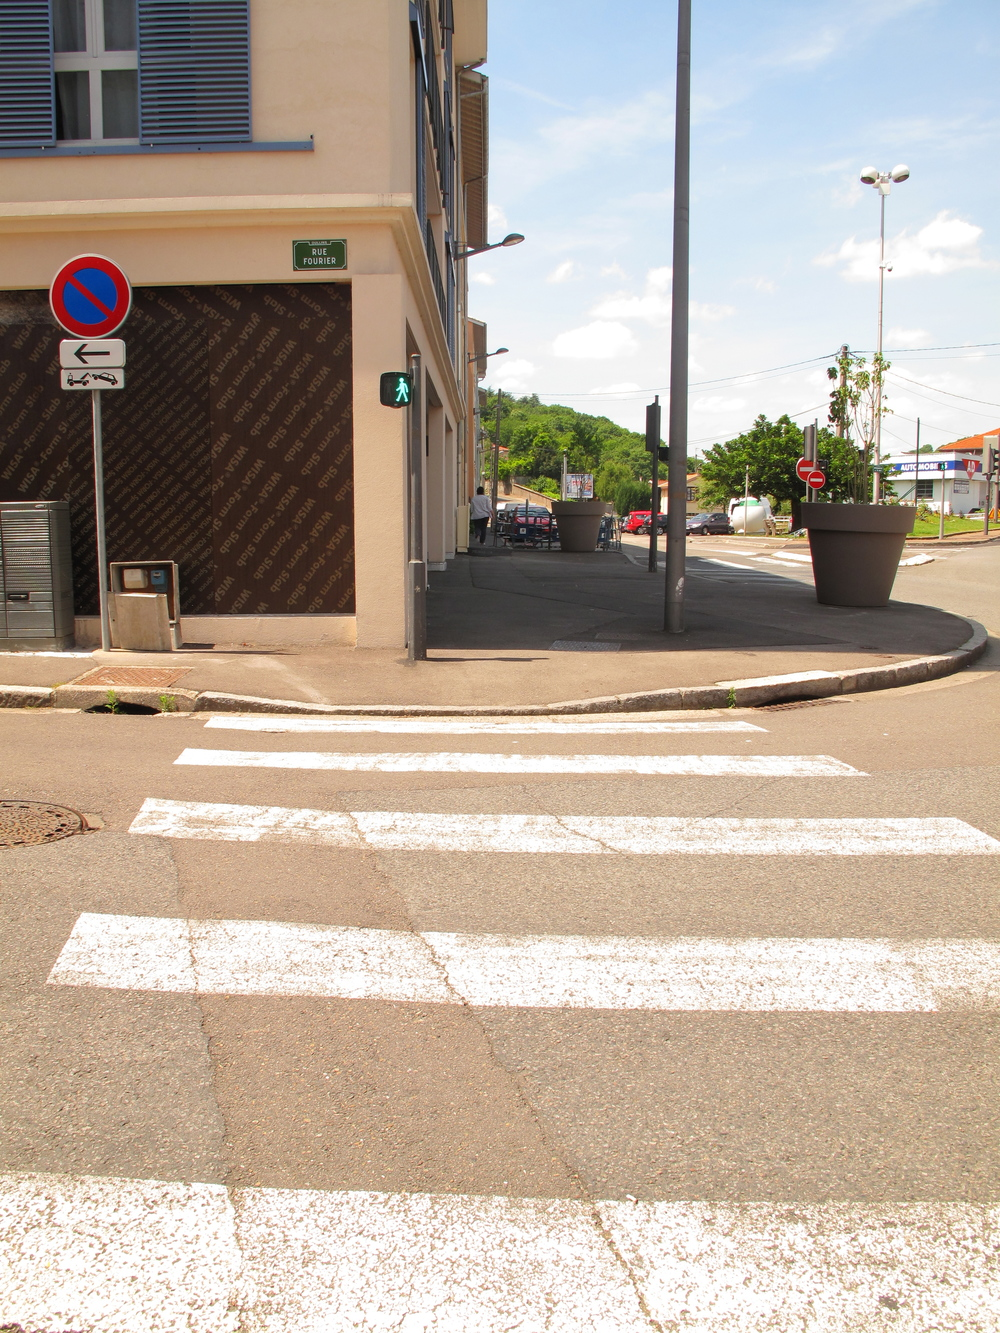 Crossing the cross walk in Oullins.